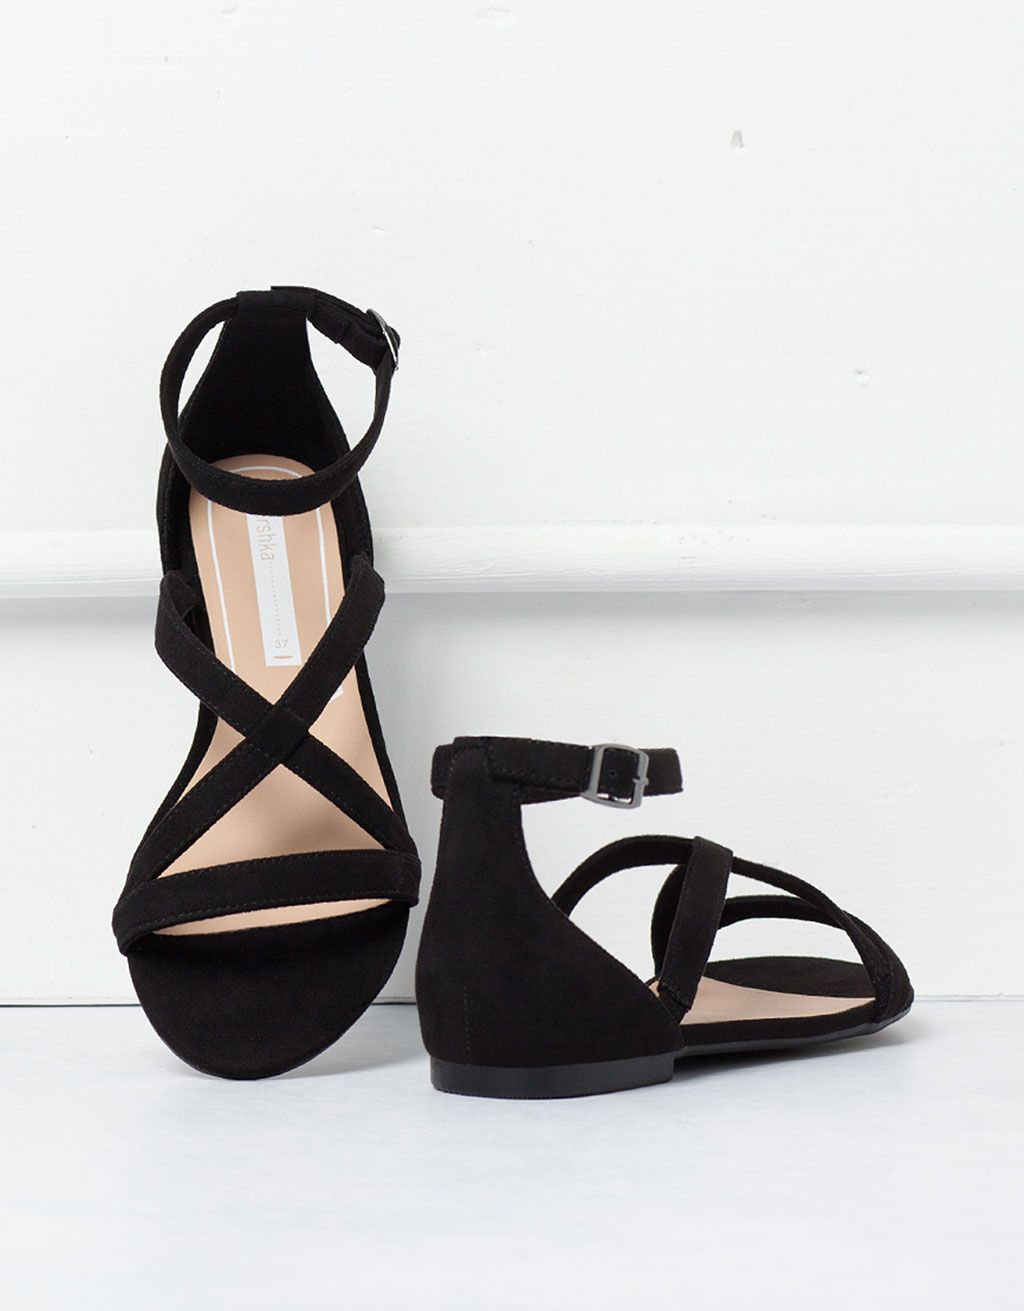 660668d853 BSK crossed sandals - Shoes - Bershka Hungary Sandalias Planas Negras,  Sandalias Bajitas, Zapatillas